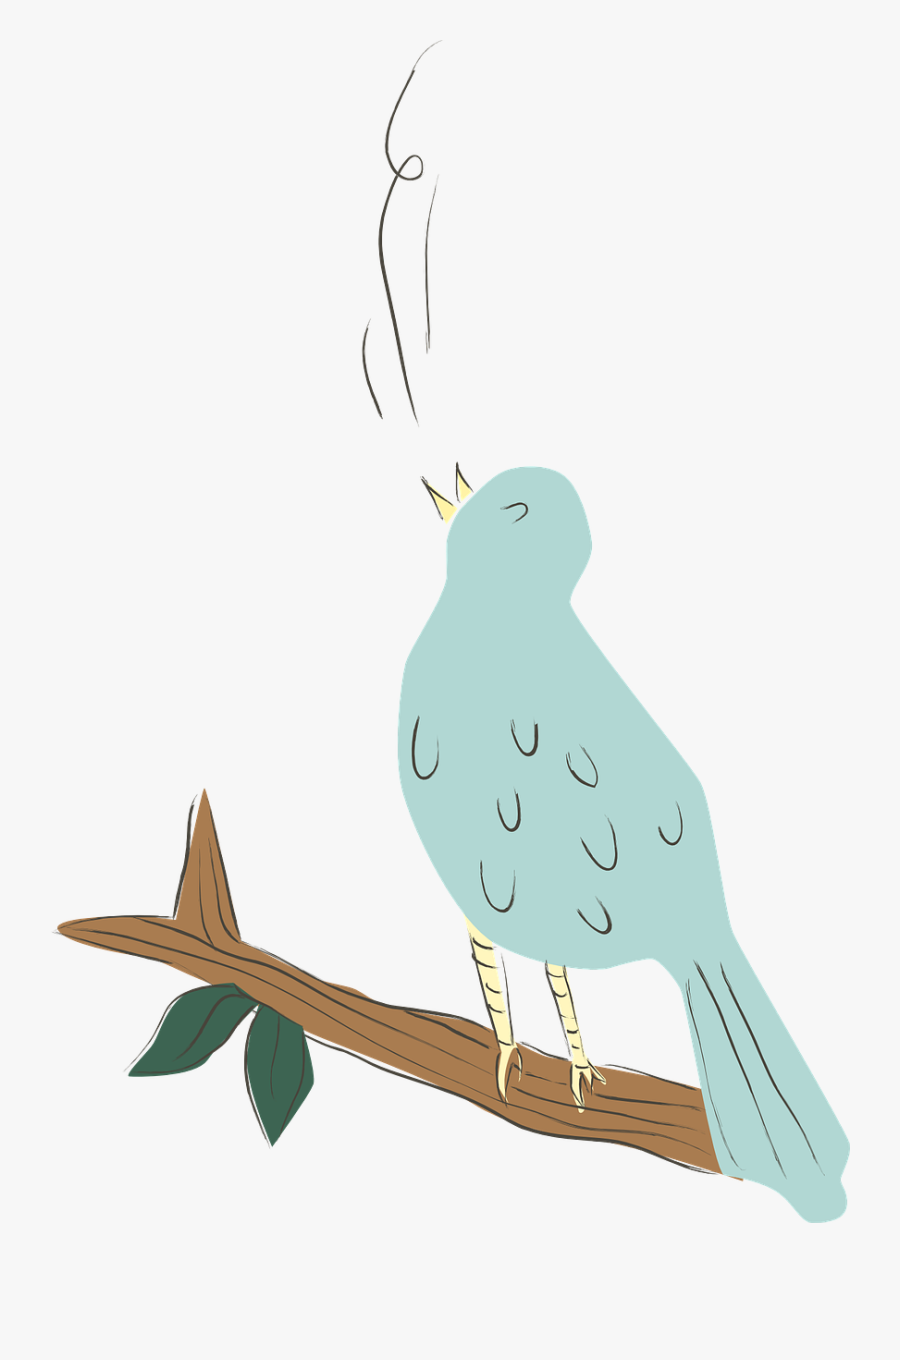 Bird Blue Singing Free Picture - Singing Bird Transparent Png, Transparent Clipart